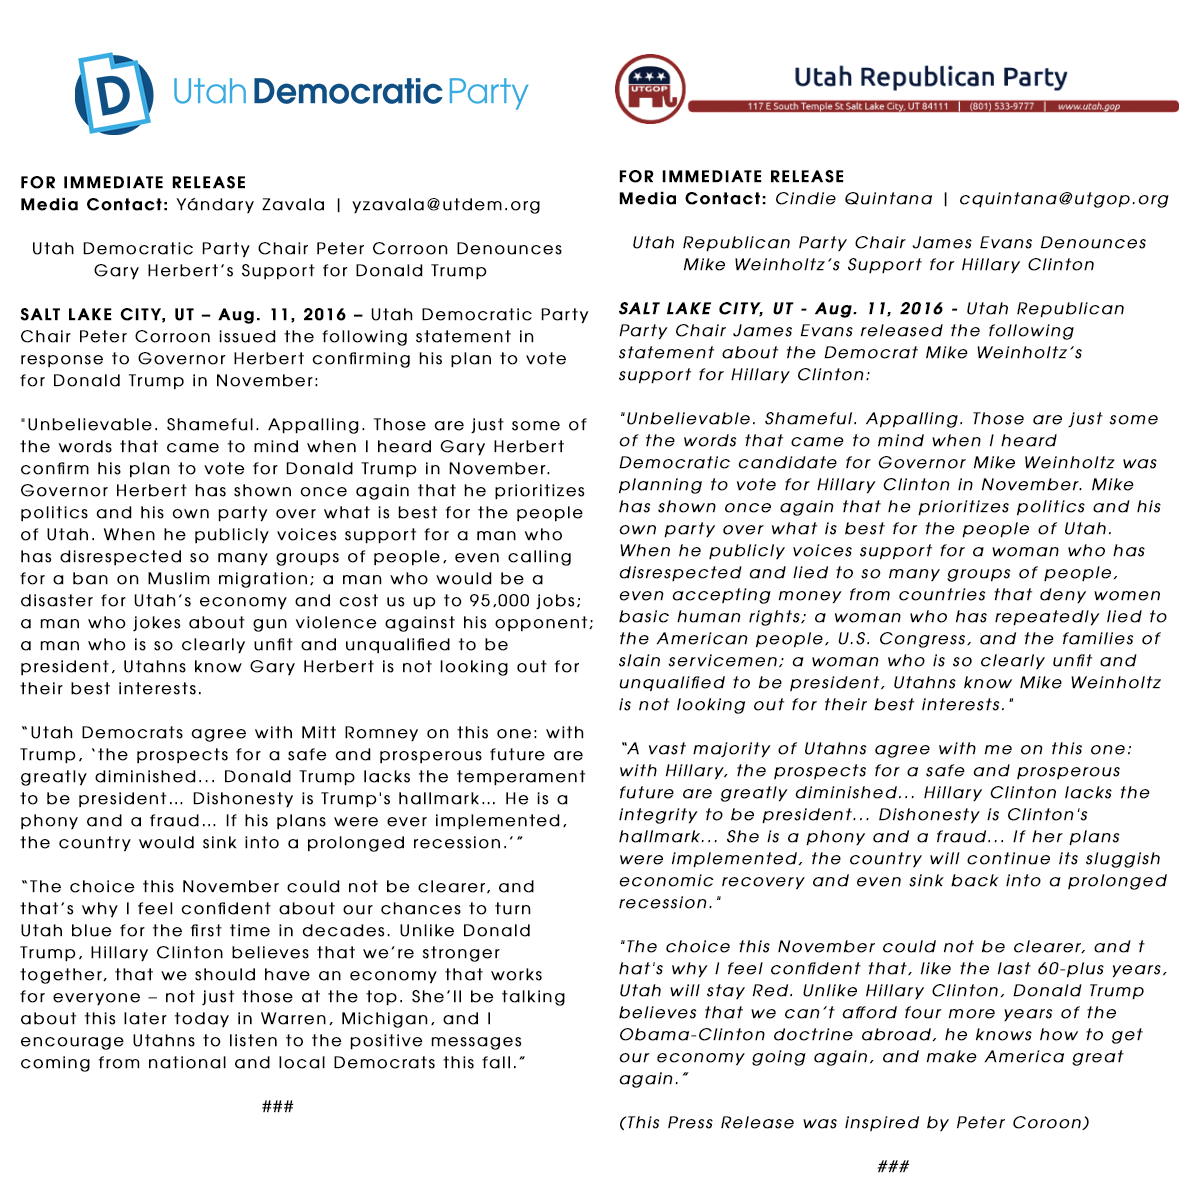 Press releases from the Utah Democratic and Republican parties issued following Gov. Gary Herbert's announcing he intends to vote for Donald Trump in November. | Image courtesy of the Utah Democratic Party, St. George Ness